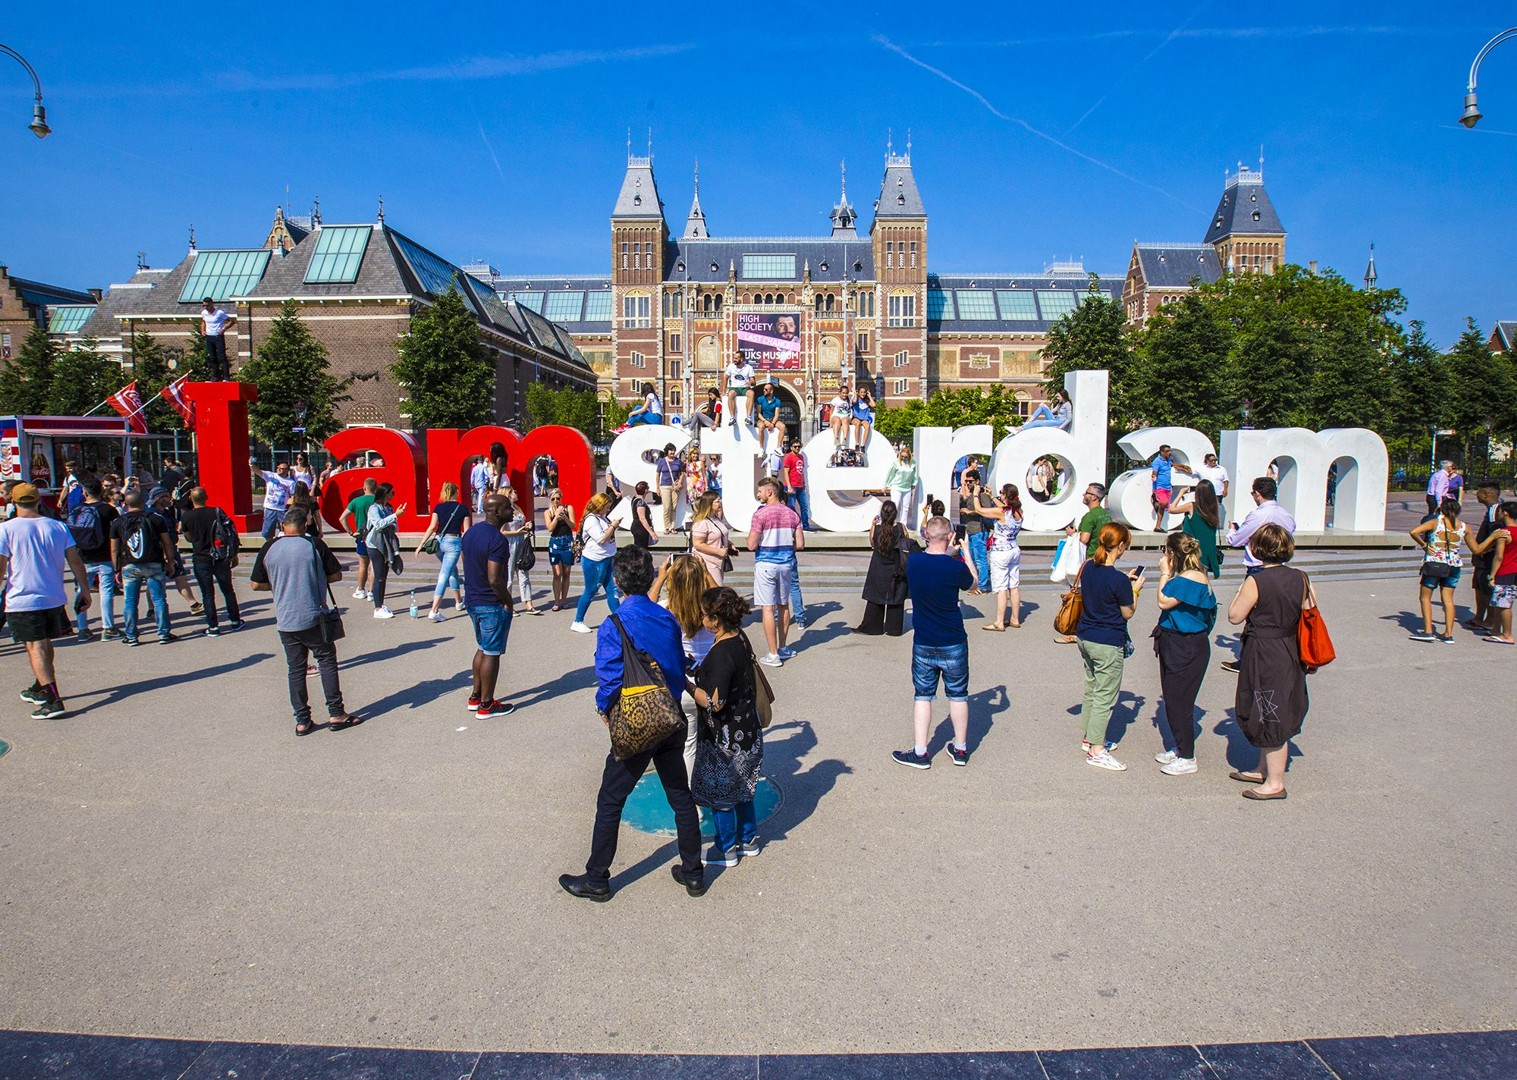 experience-amsterdam-culture-landmarks-bike-and-boat-skedaddle.jpg - Holland and Belgium - Amsterdam to Bruges - Premium Bike and Barge Holiday - Leisure Cycling